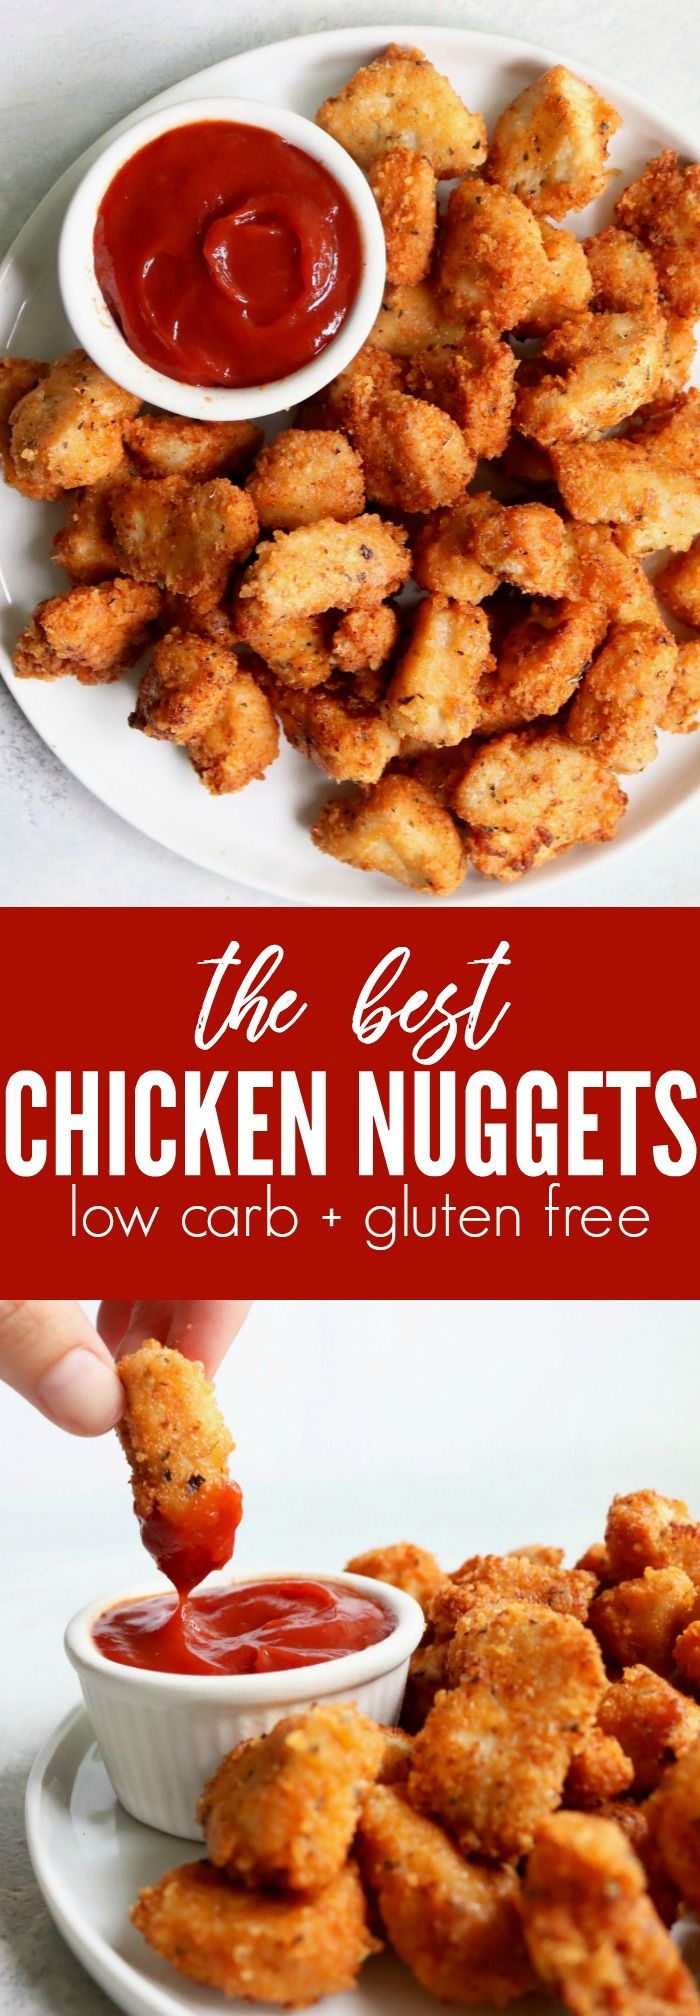 The BEST chicken nugget recipe!! Low carb + gluten free breading fried in avocado oil. Really fun weeknight dinner recipe, the whole family will love them!! family dinner | weeknight dinner | easy | healthy| thetoastedpinenut.com